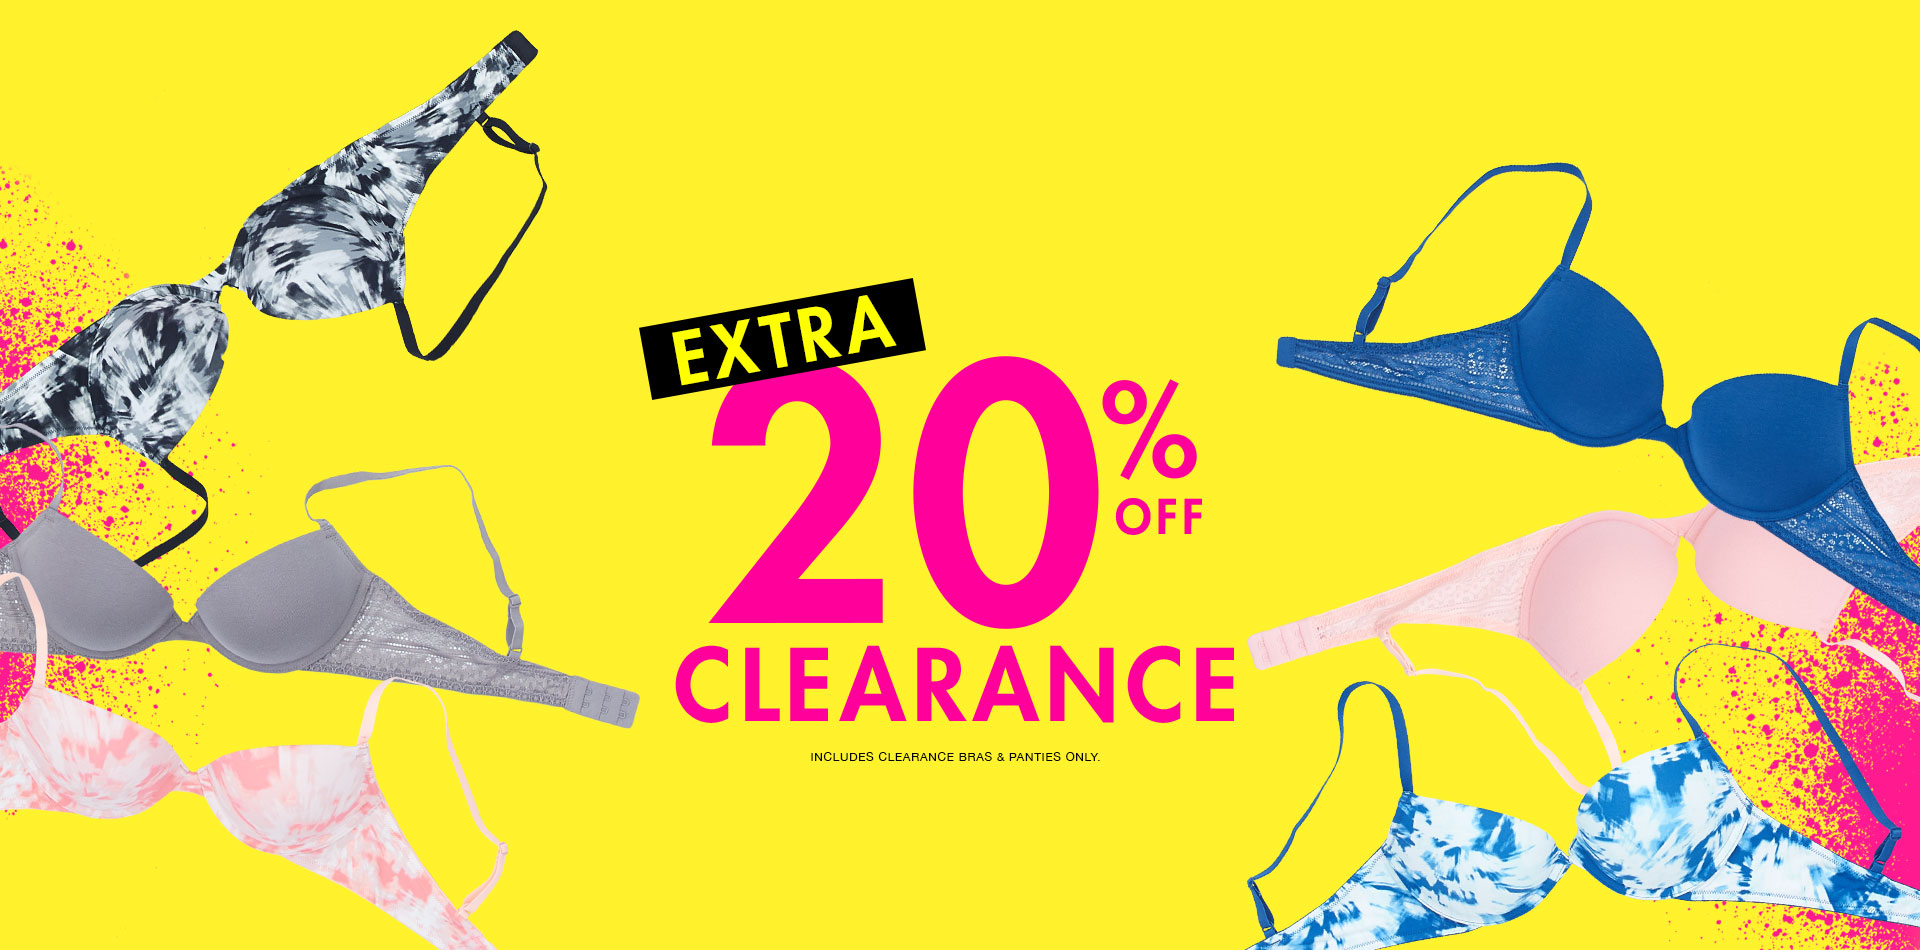 Extra 20% off clearance.